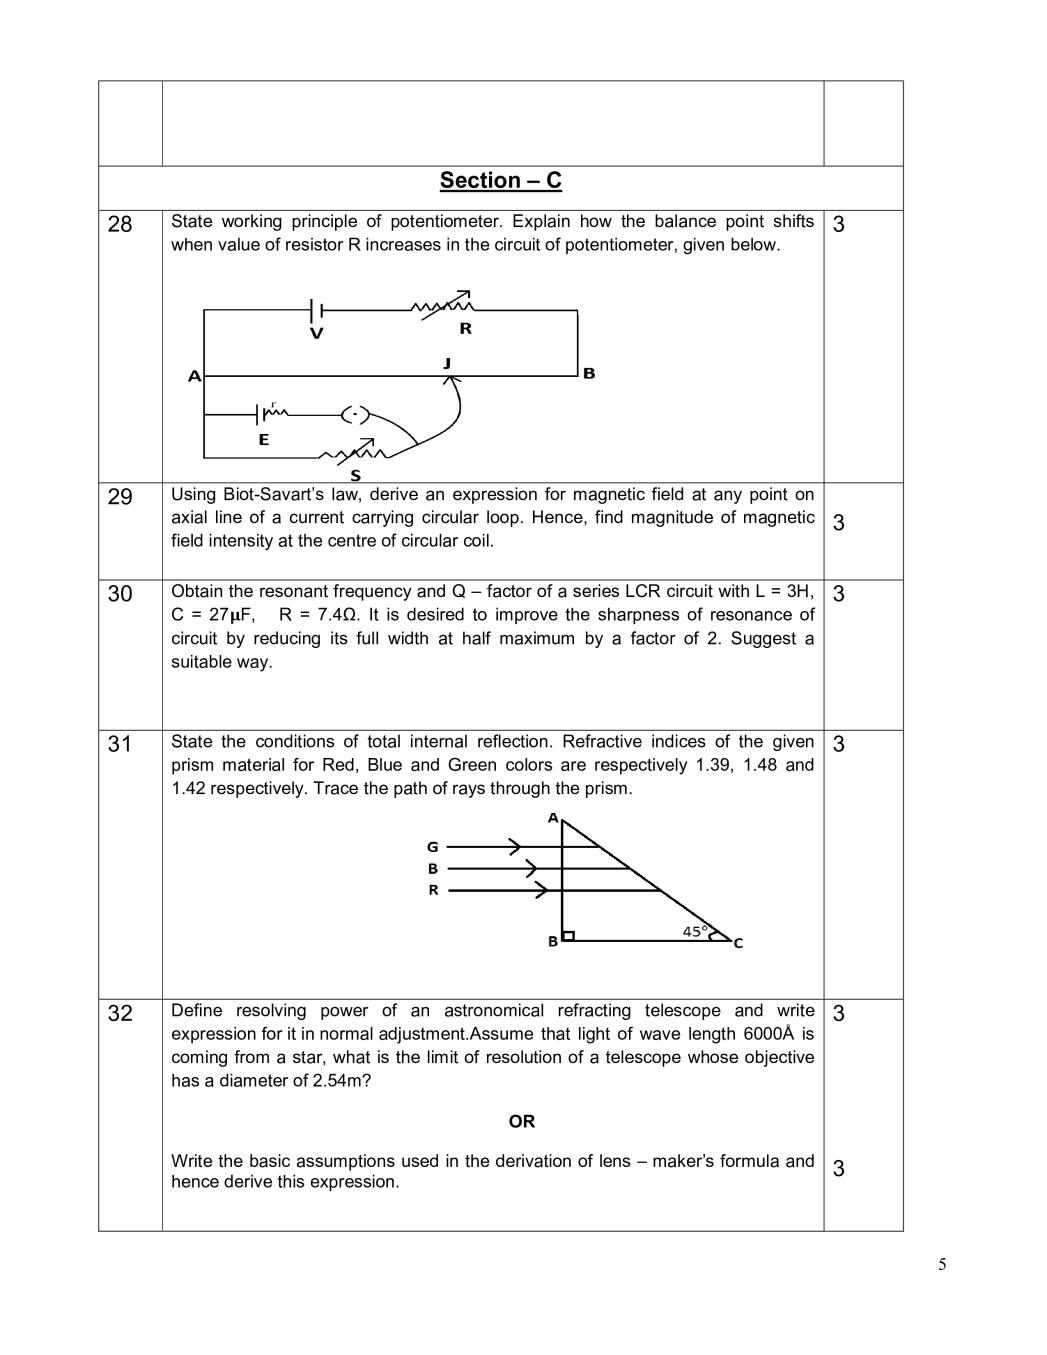 CBSE Sample Papers 2020 for Class 12 – Physics